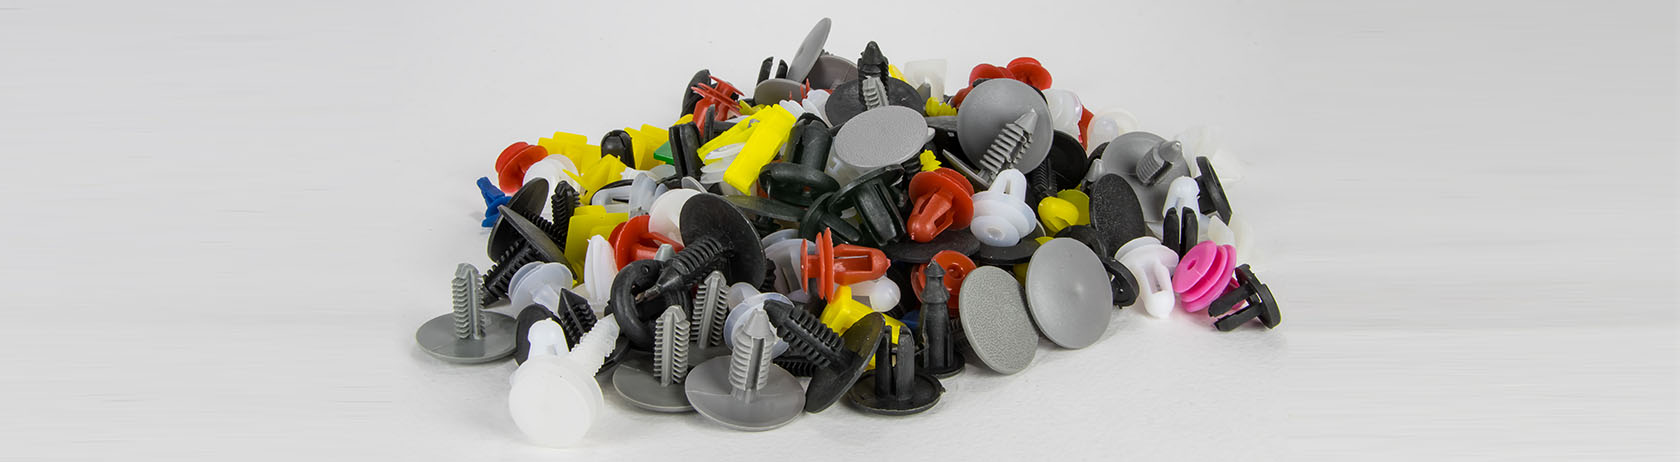 Pile of plastic rivets in different shapes and sizes